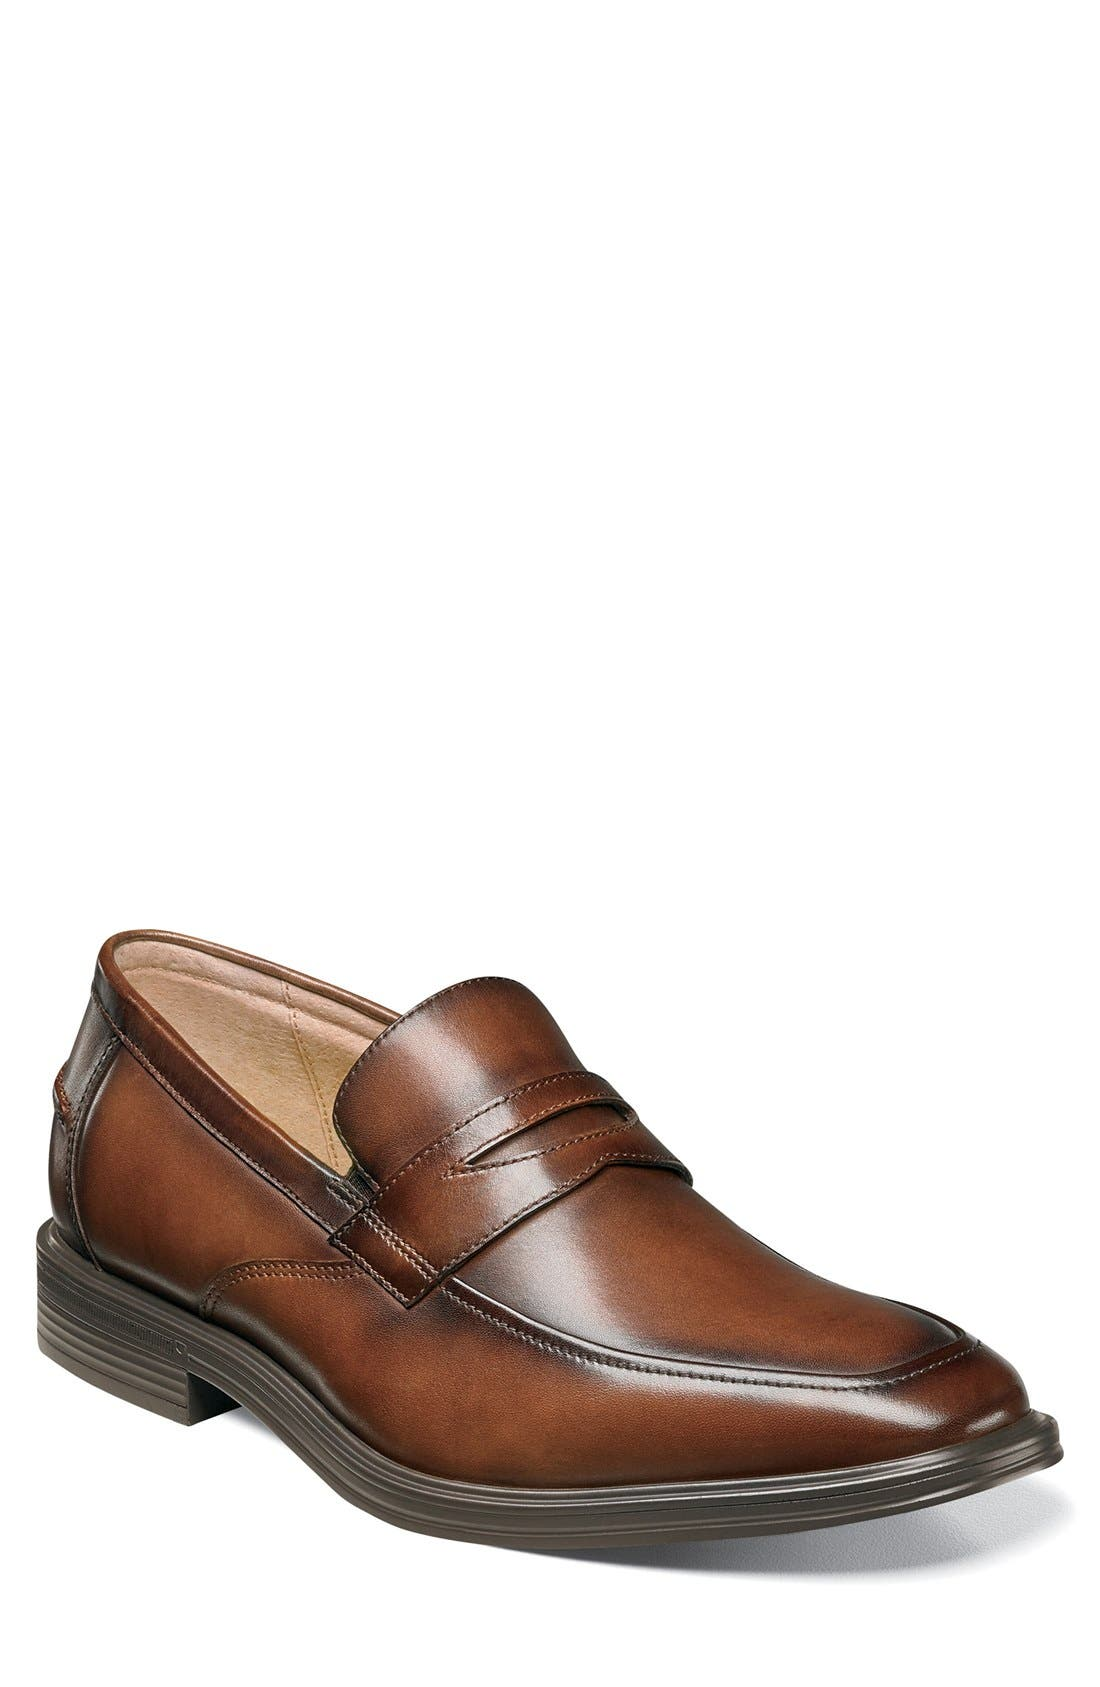 FLORSHEIM 'Heights' Penny Loafer, Main, color, COGNAC LEATHER